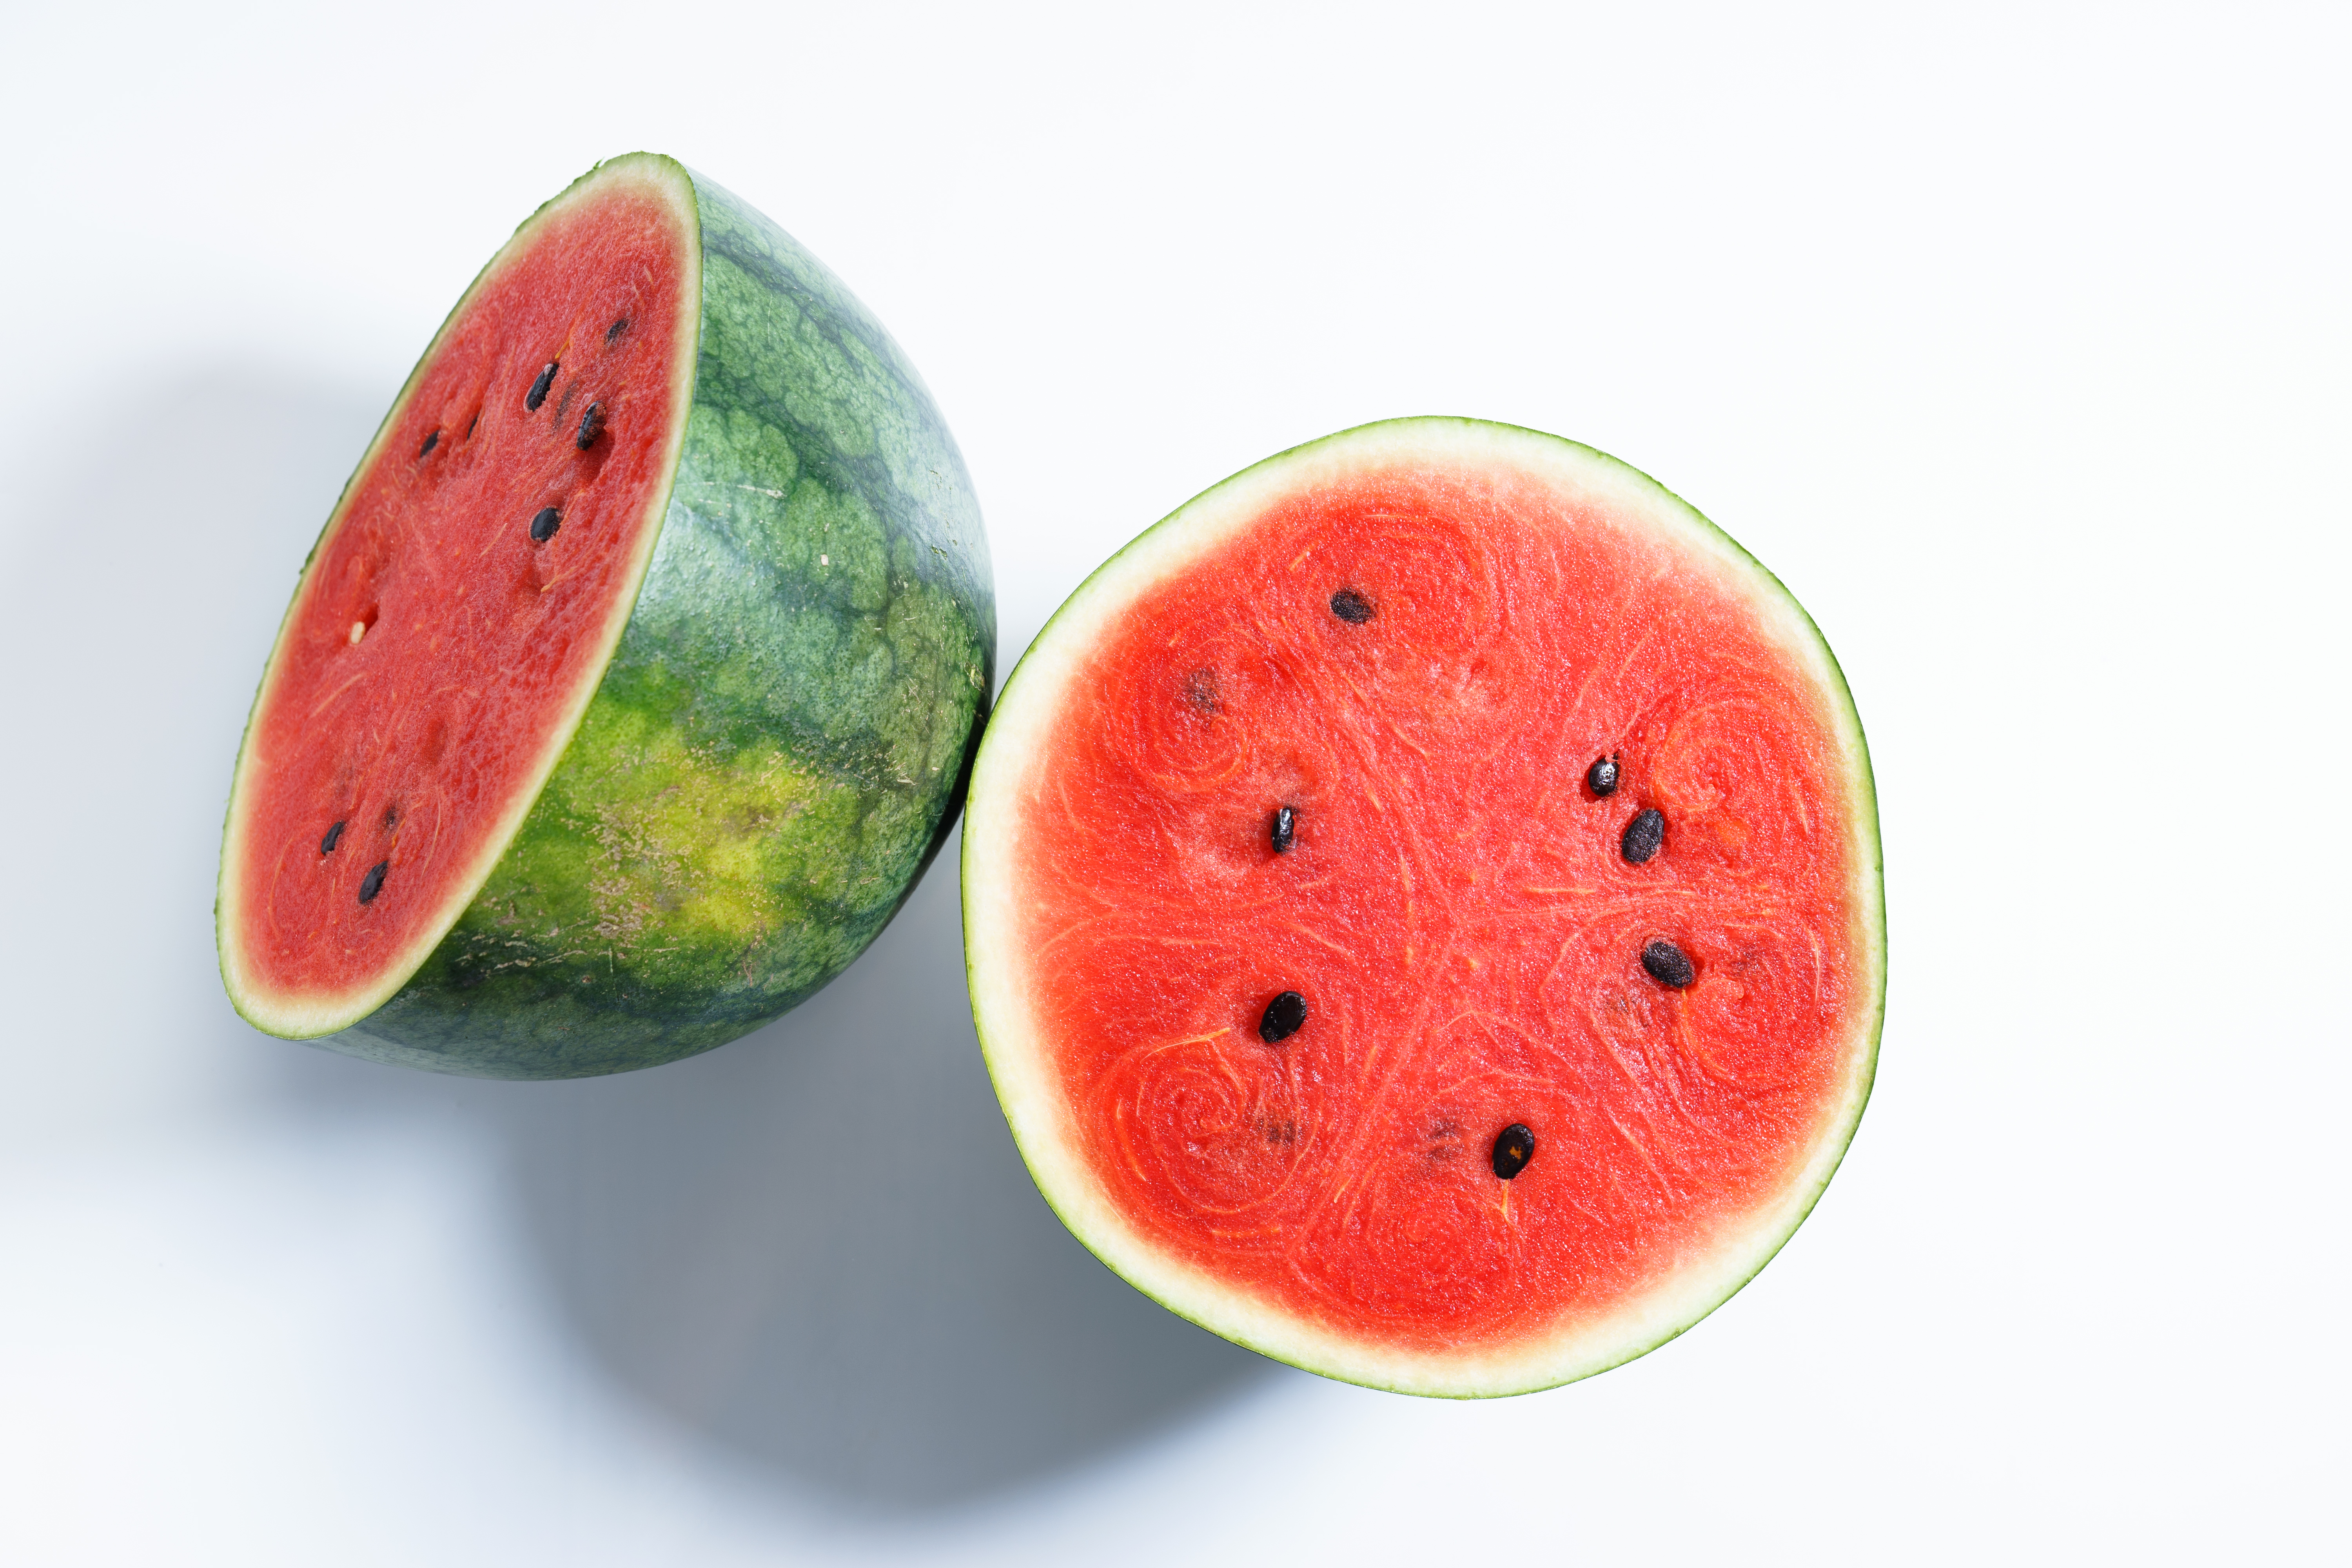 Benefits of Apples & Watermelon to the Body | Healthy Eating | SF Gate